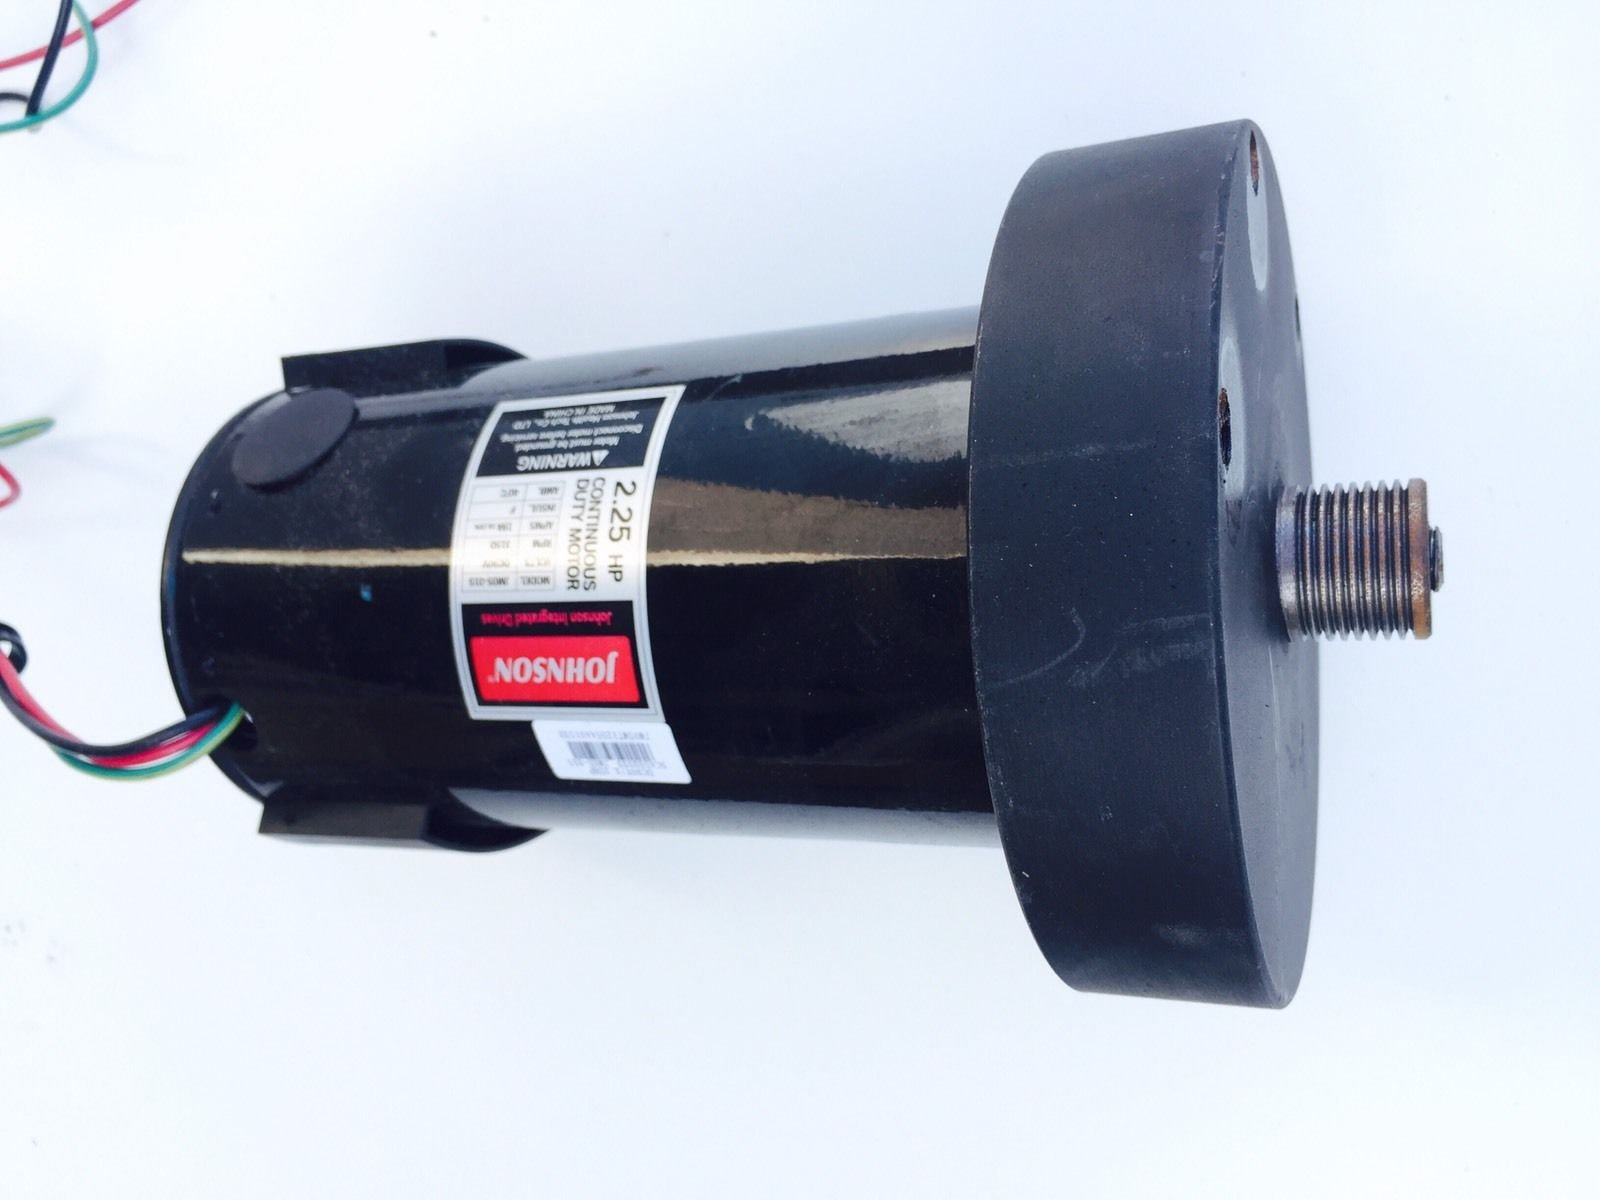 DC Drive Motor 116ZY3-1 L-355197 or l-405559 365901 or 405596 Works with NordicTrack Proform Treadmill Inc Icon Health /& Fitness